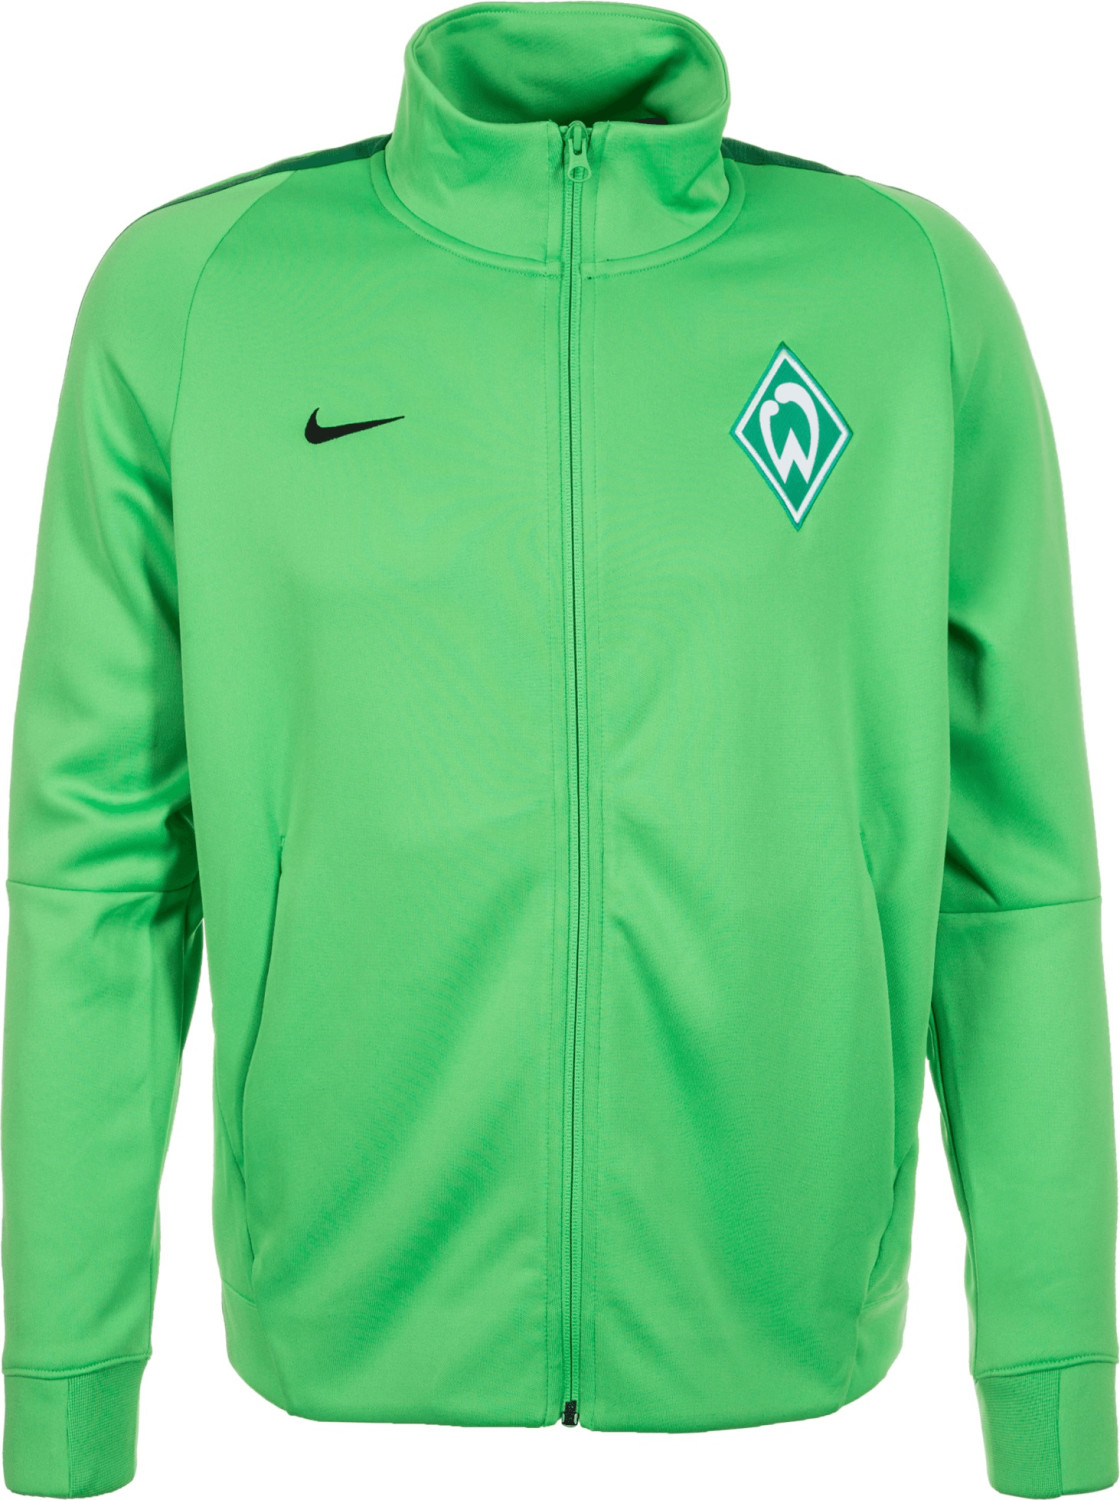 Nike Werder Bremen Authentic Franchise Jacke